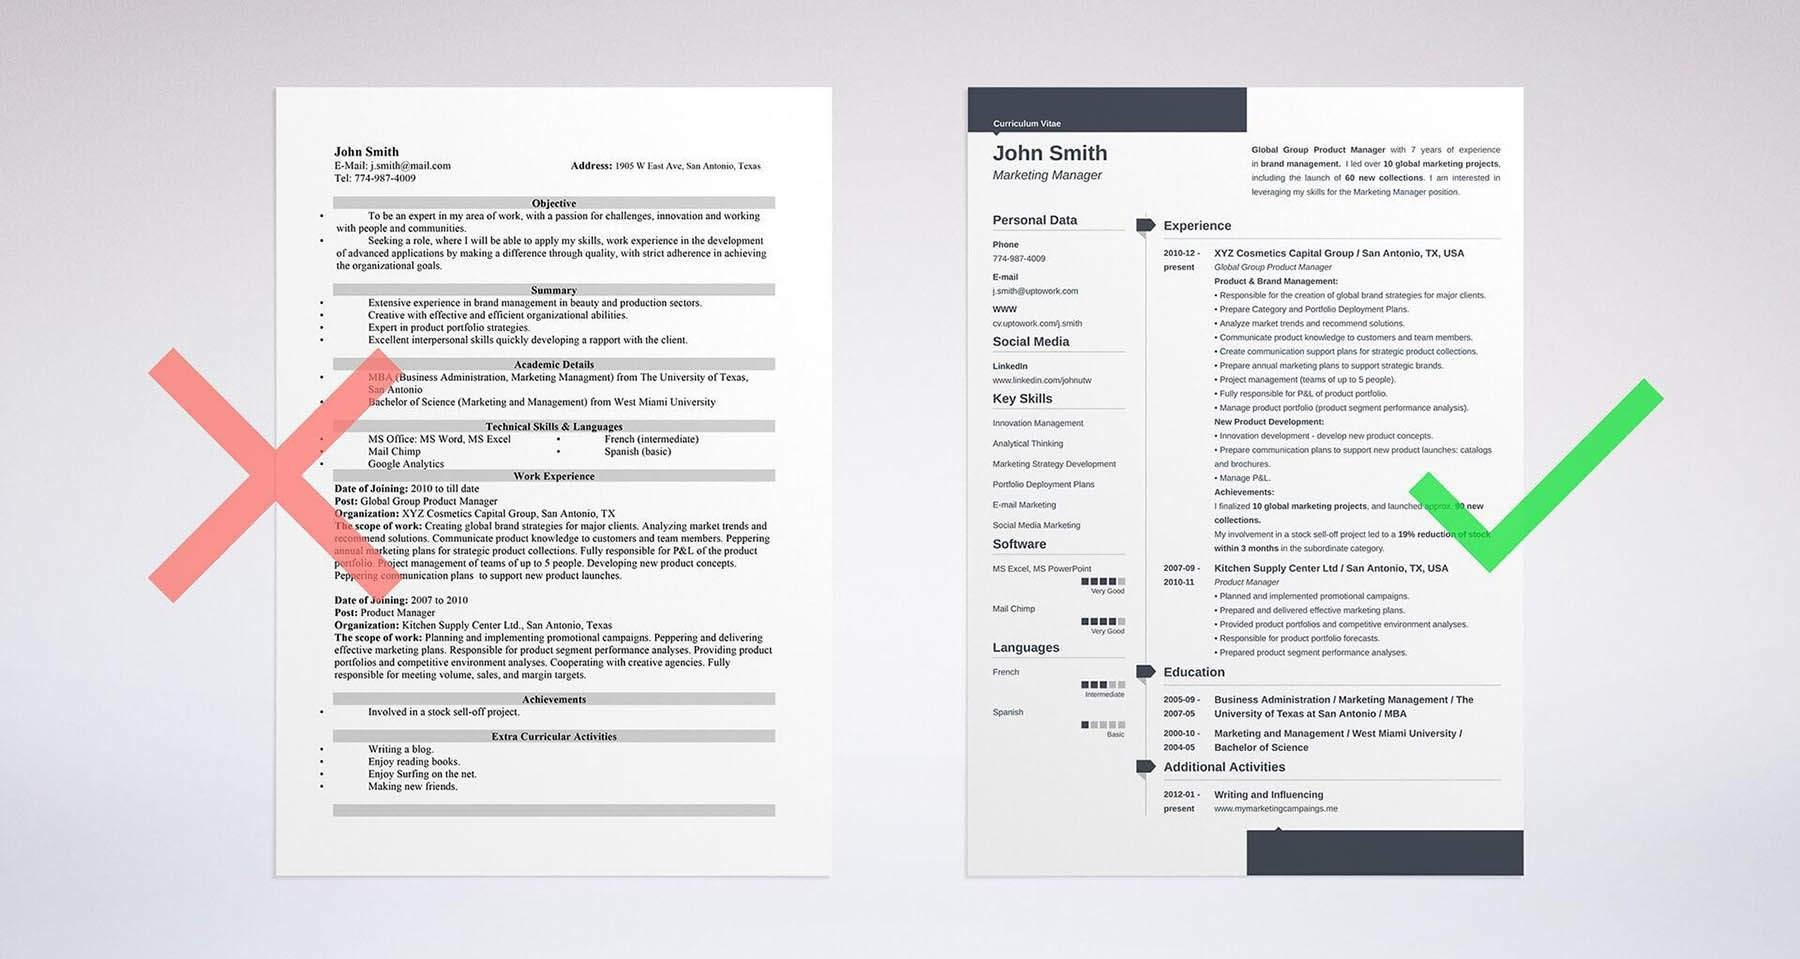 sample resume objective see 20 resume templates and create your resume here - Profile Or Objective On Resume